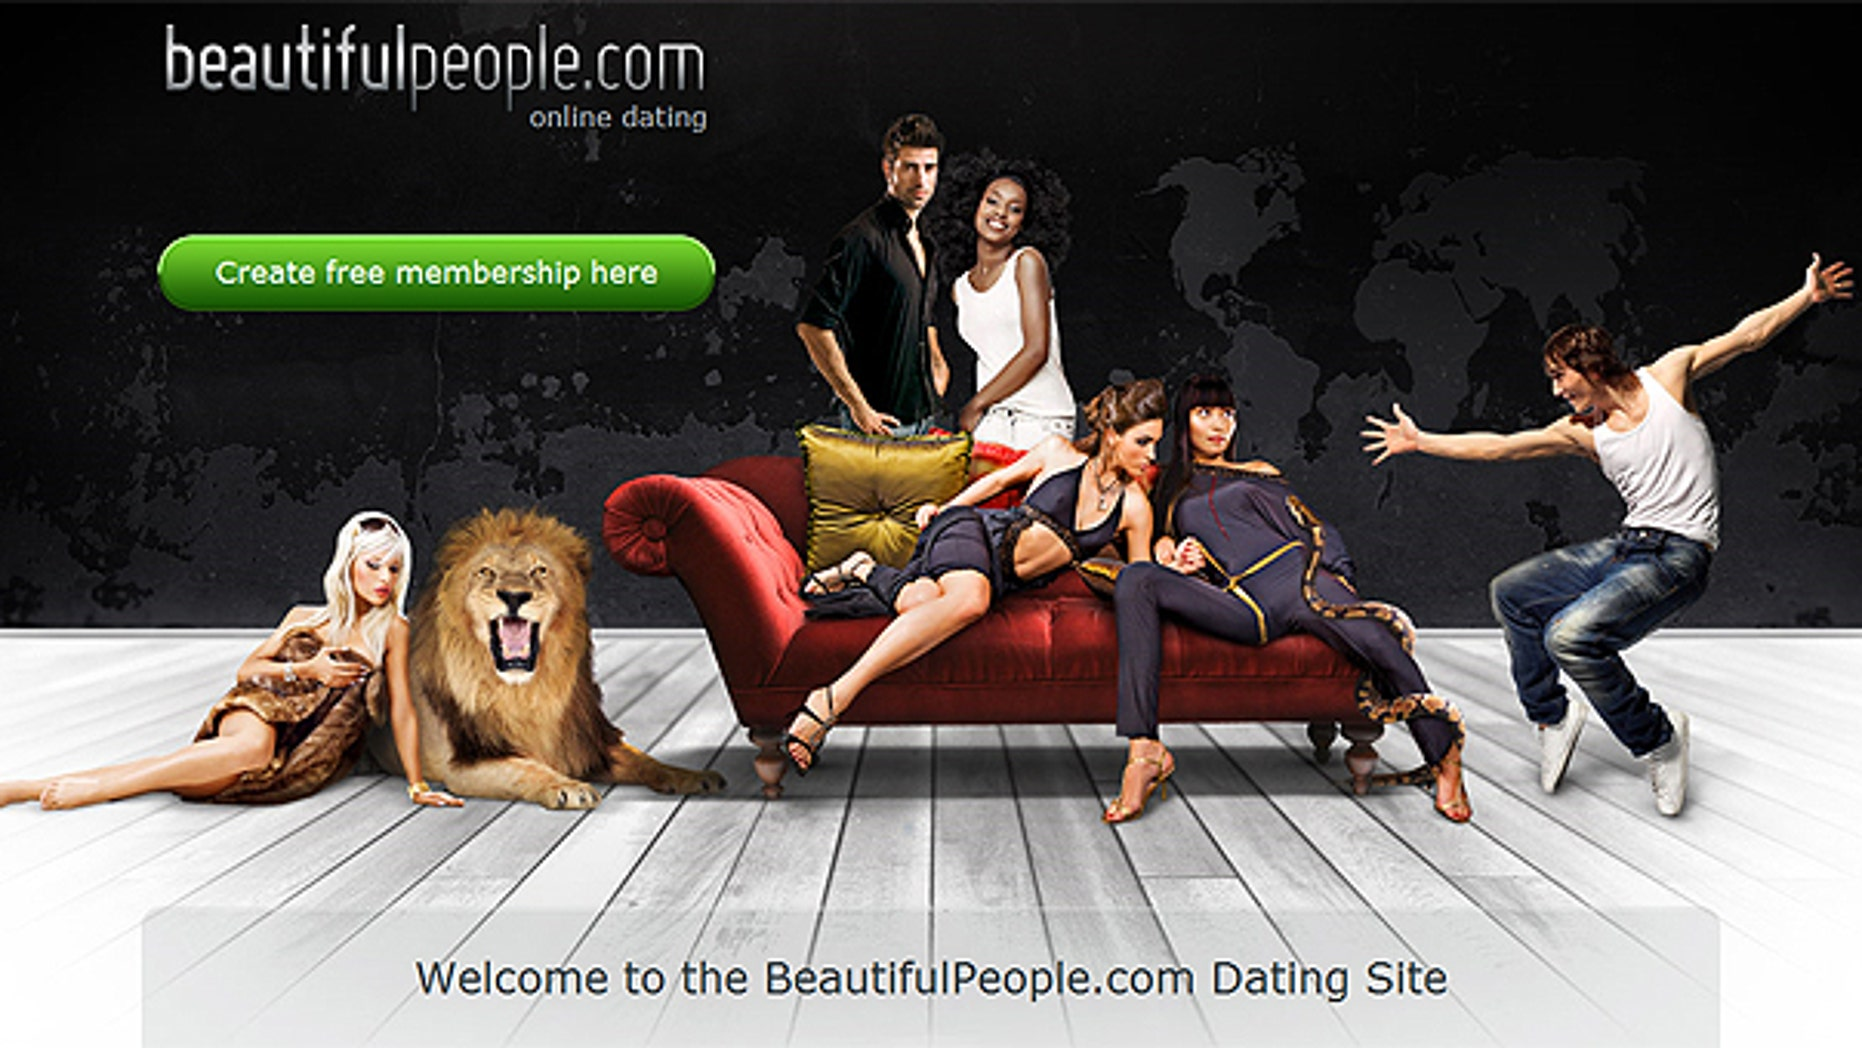 This screengrab shows the homepage of Denmark-based website Beautifulpeople.com.